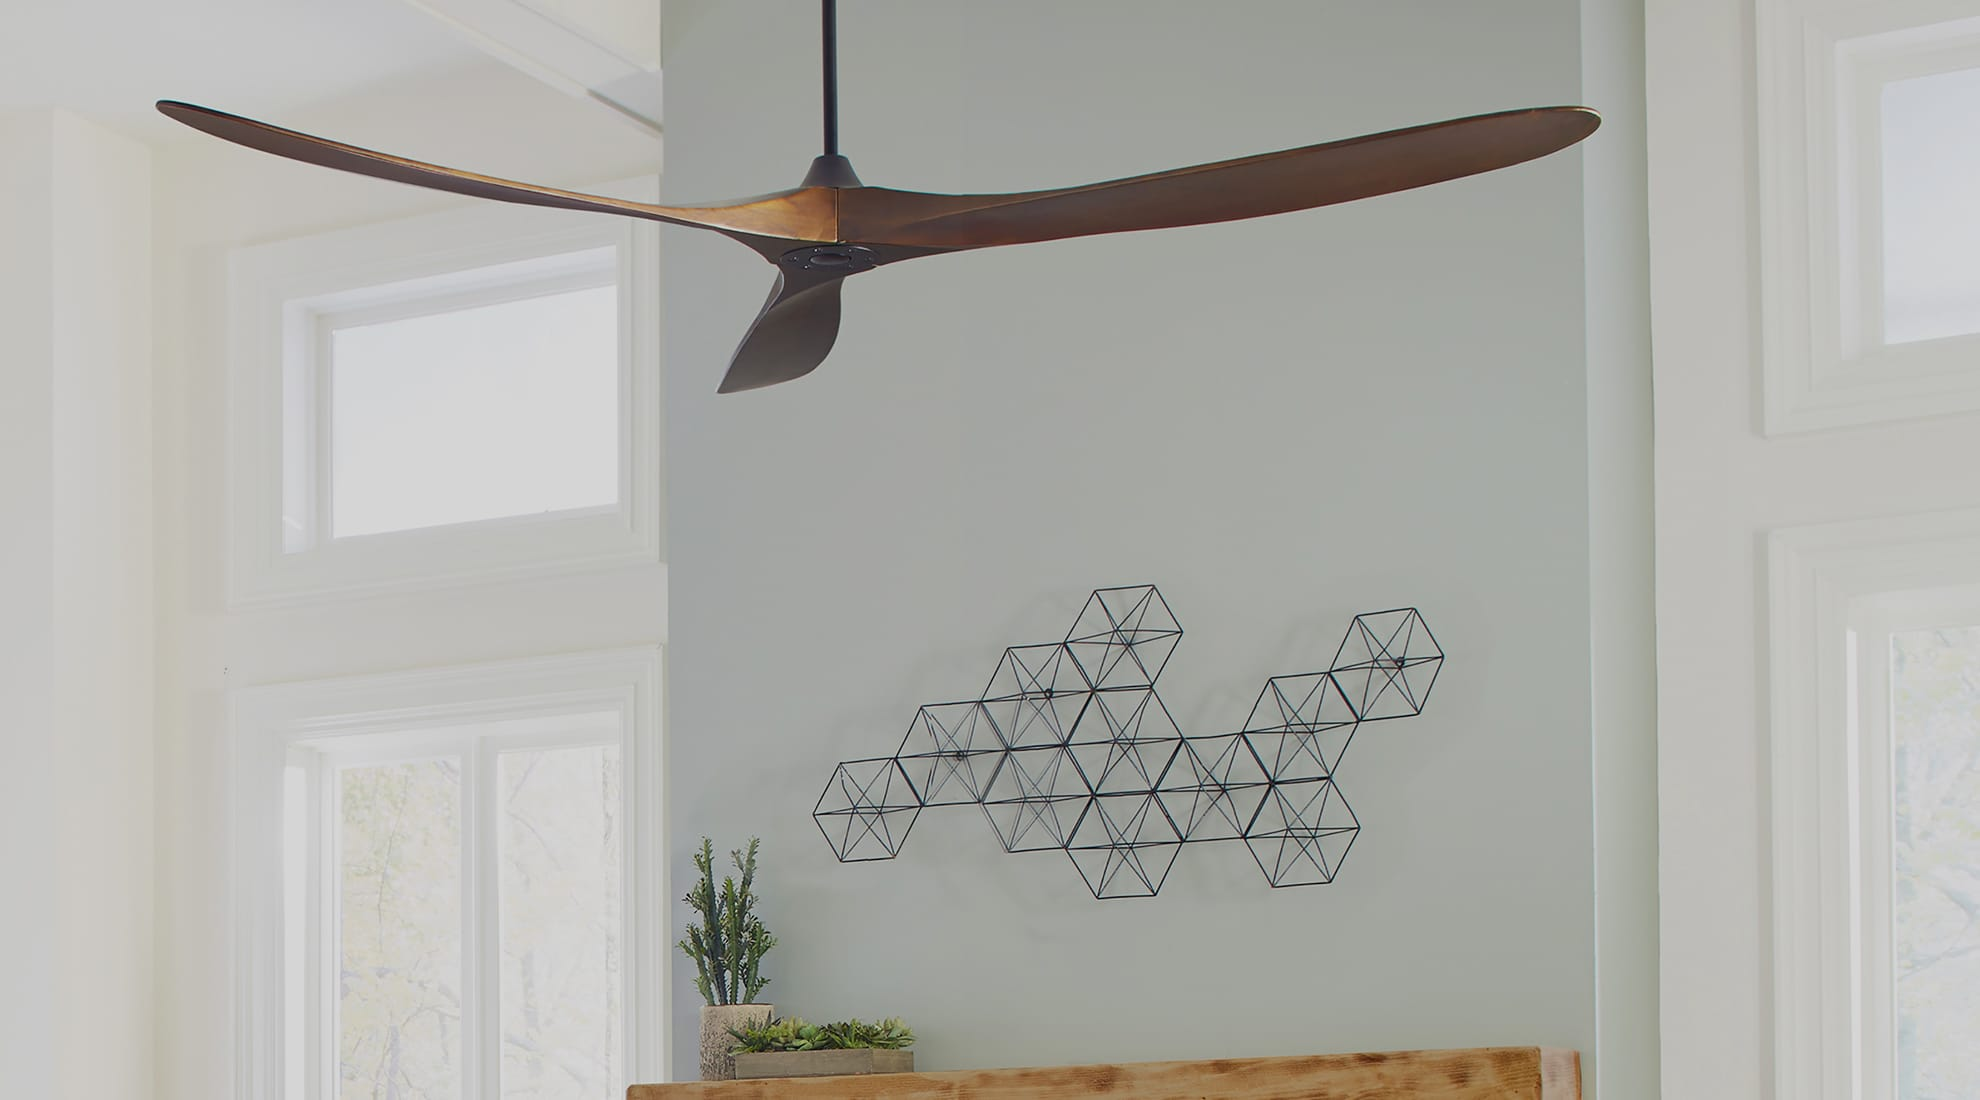 Small Ceiling Fans For Sale Ceiling Fan Sizes Ceiling Fan Size Guide At Lumens